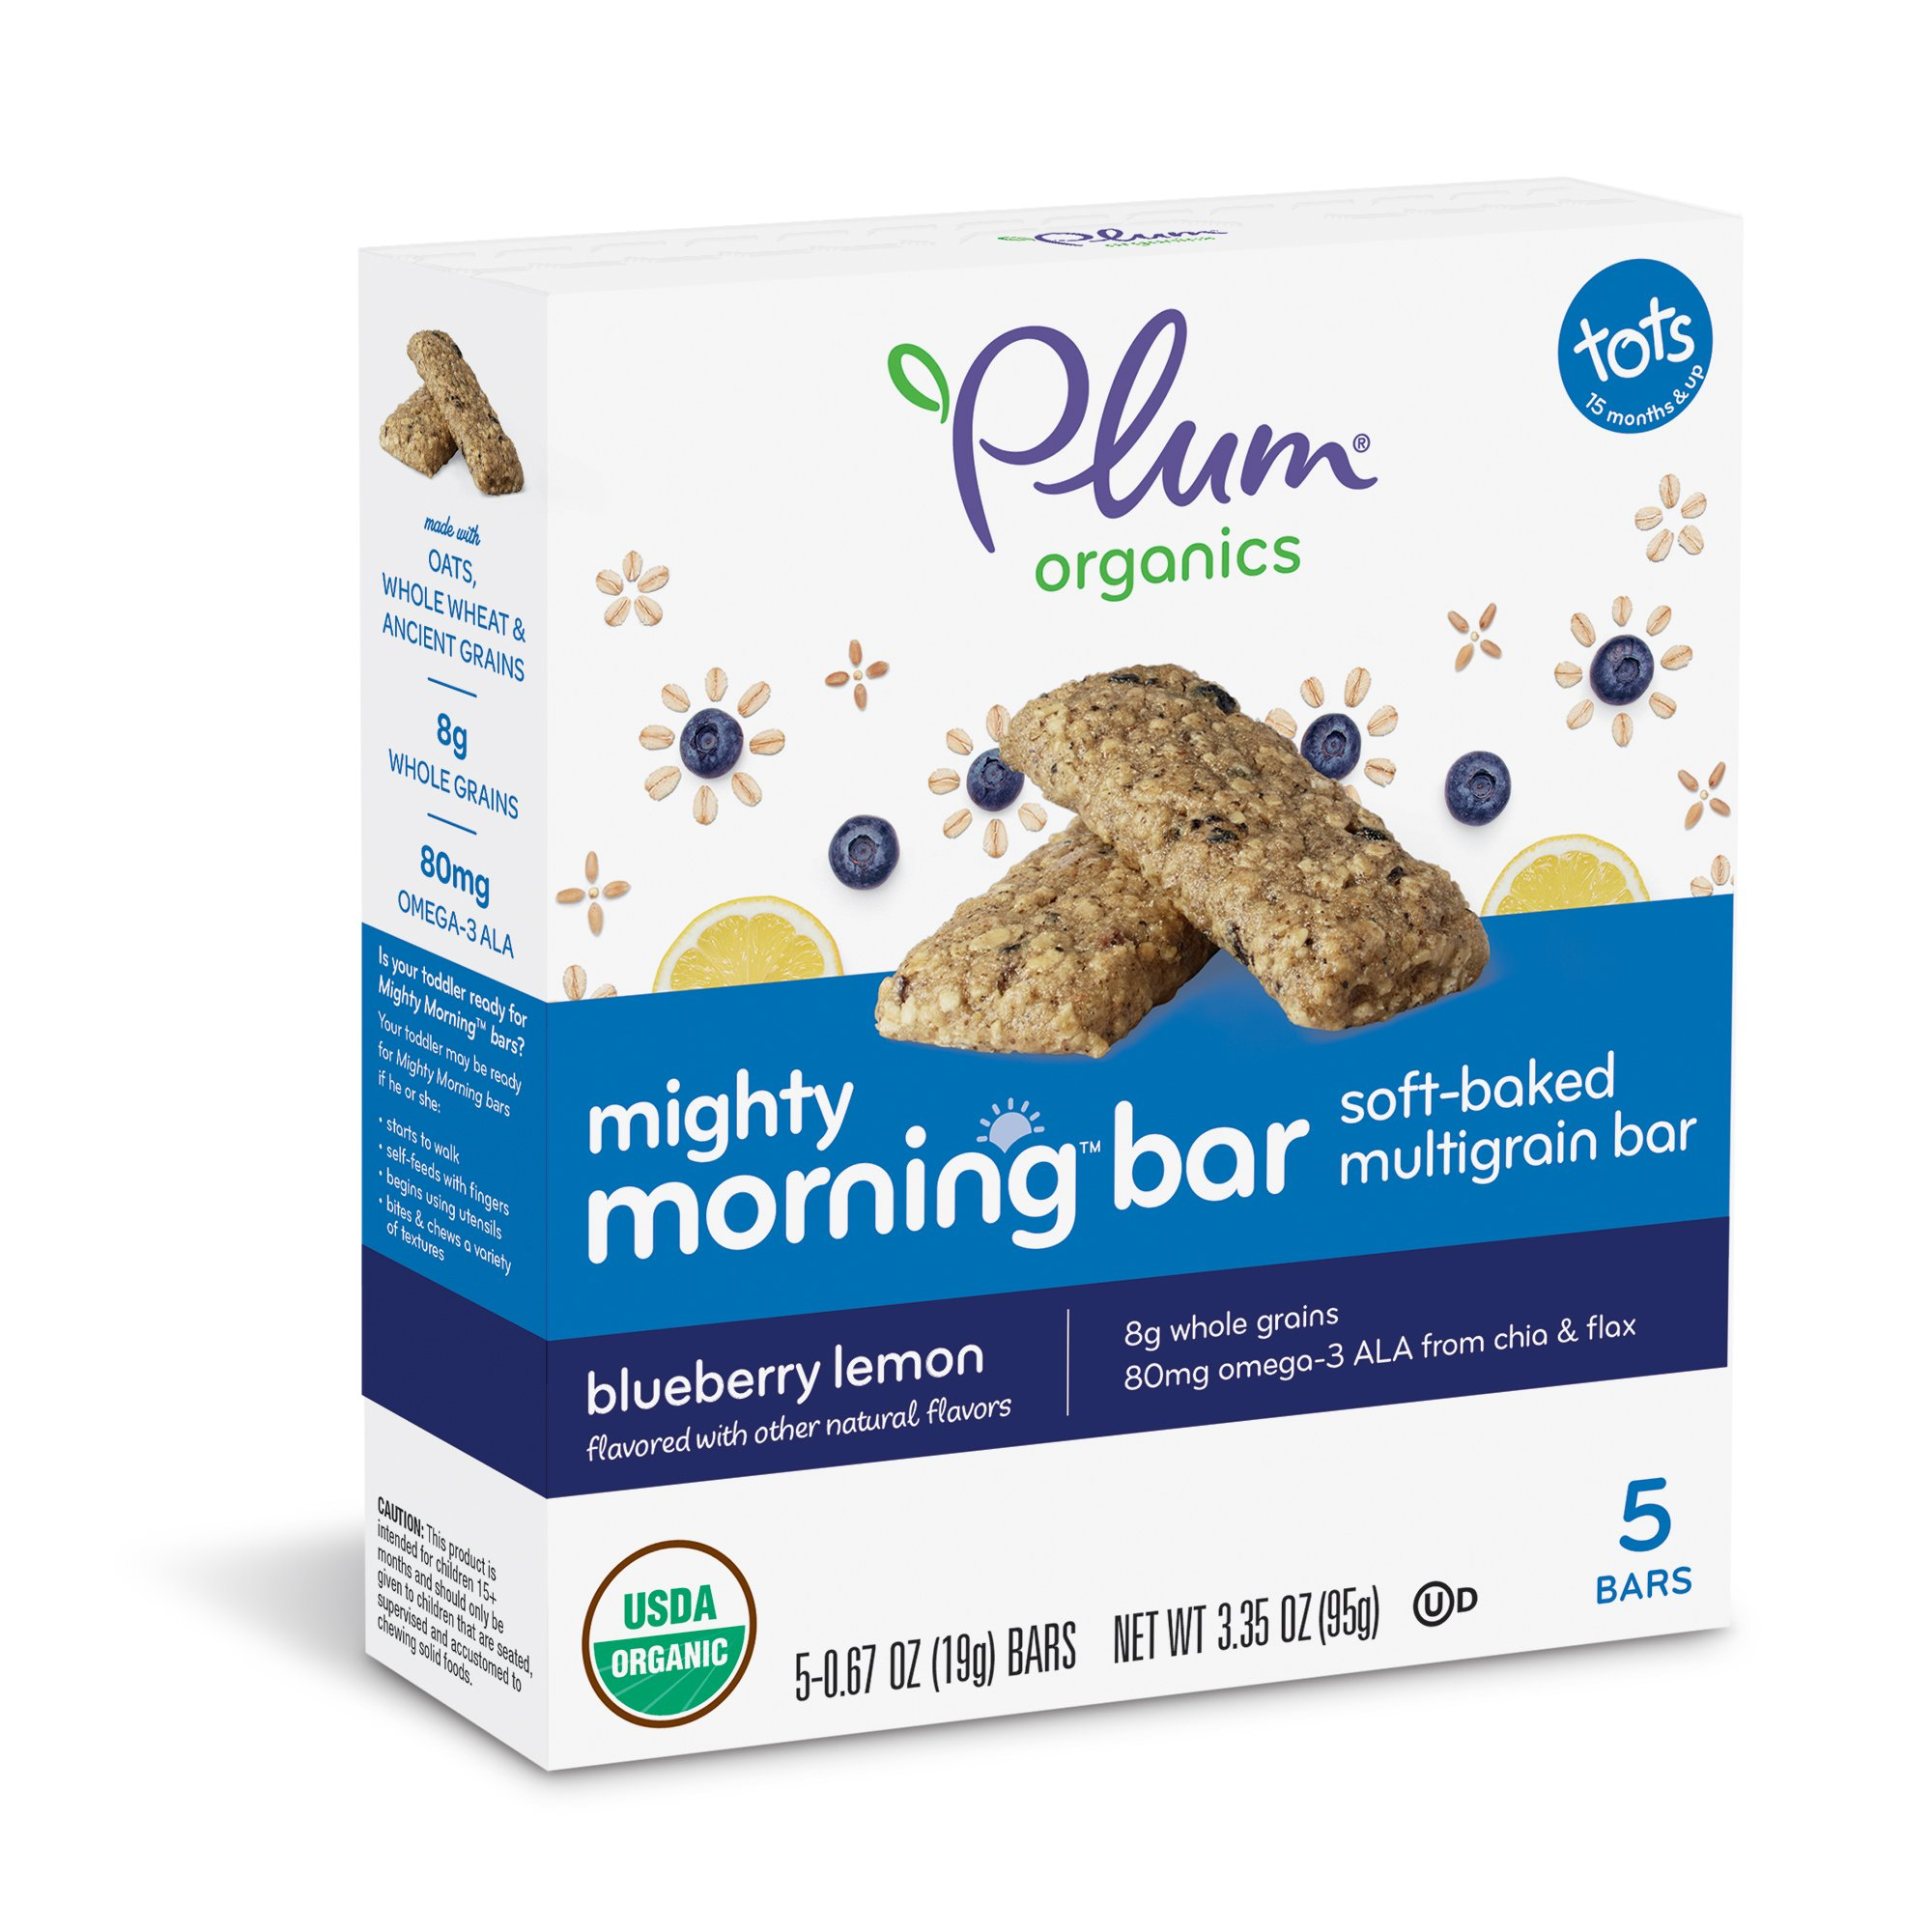 Plum Organics Mighty Morning, Organic Toddler Bar, Blueberry Lemon, 3.35 Ounce (Pack of 8) by Plum Organics